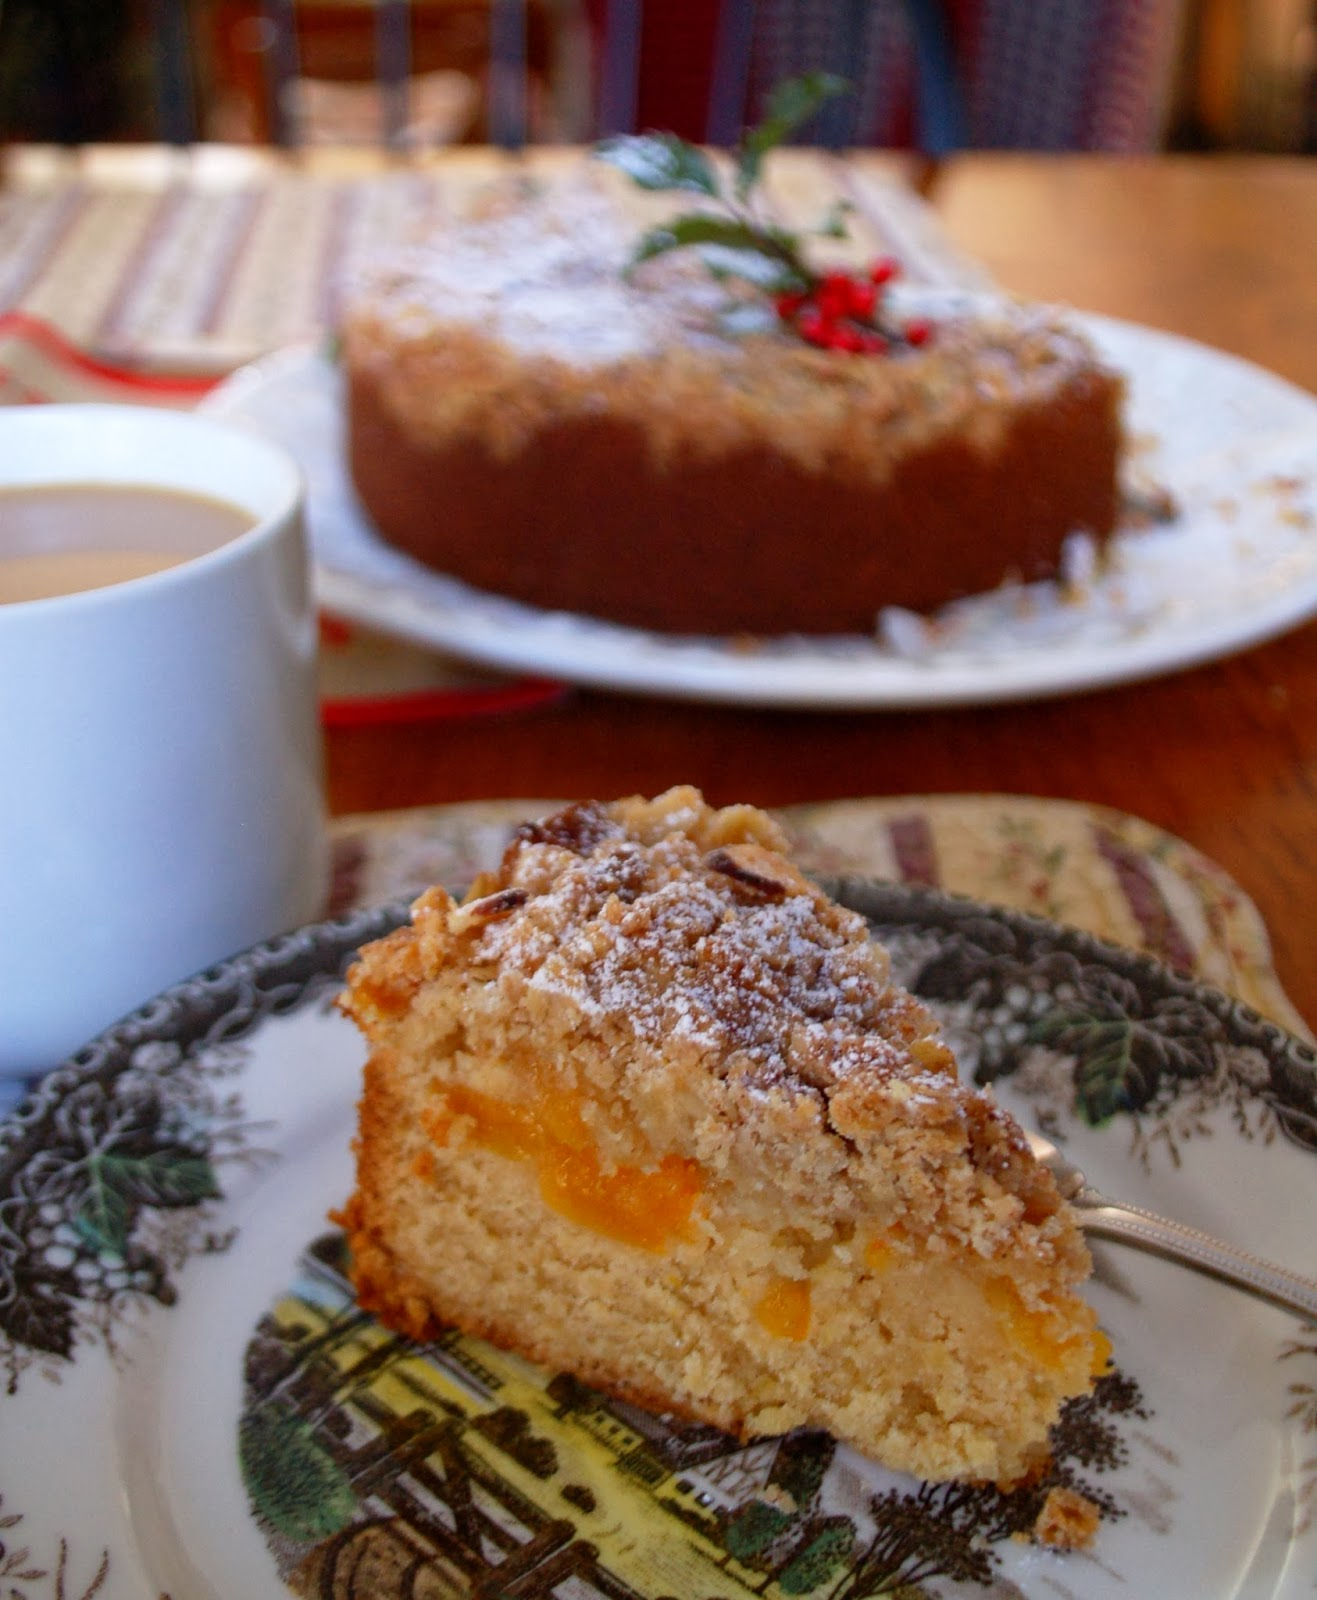 Recipe for apricot crumble cake